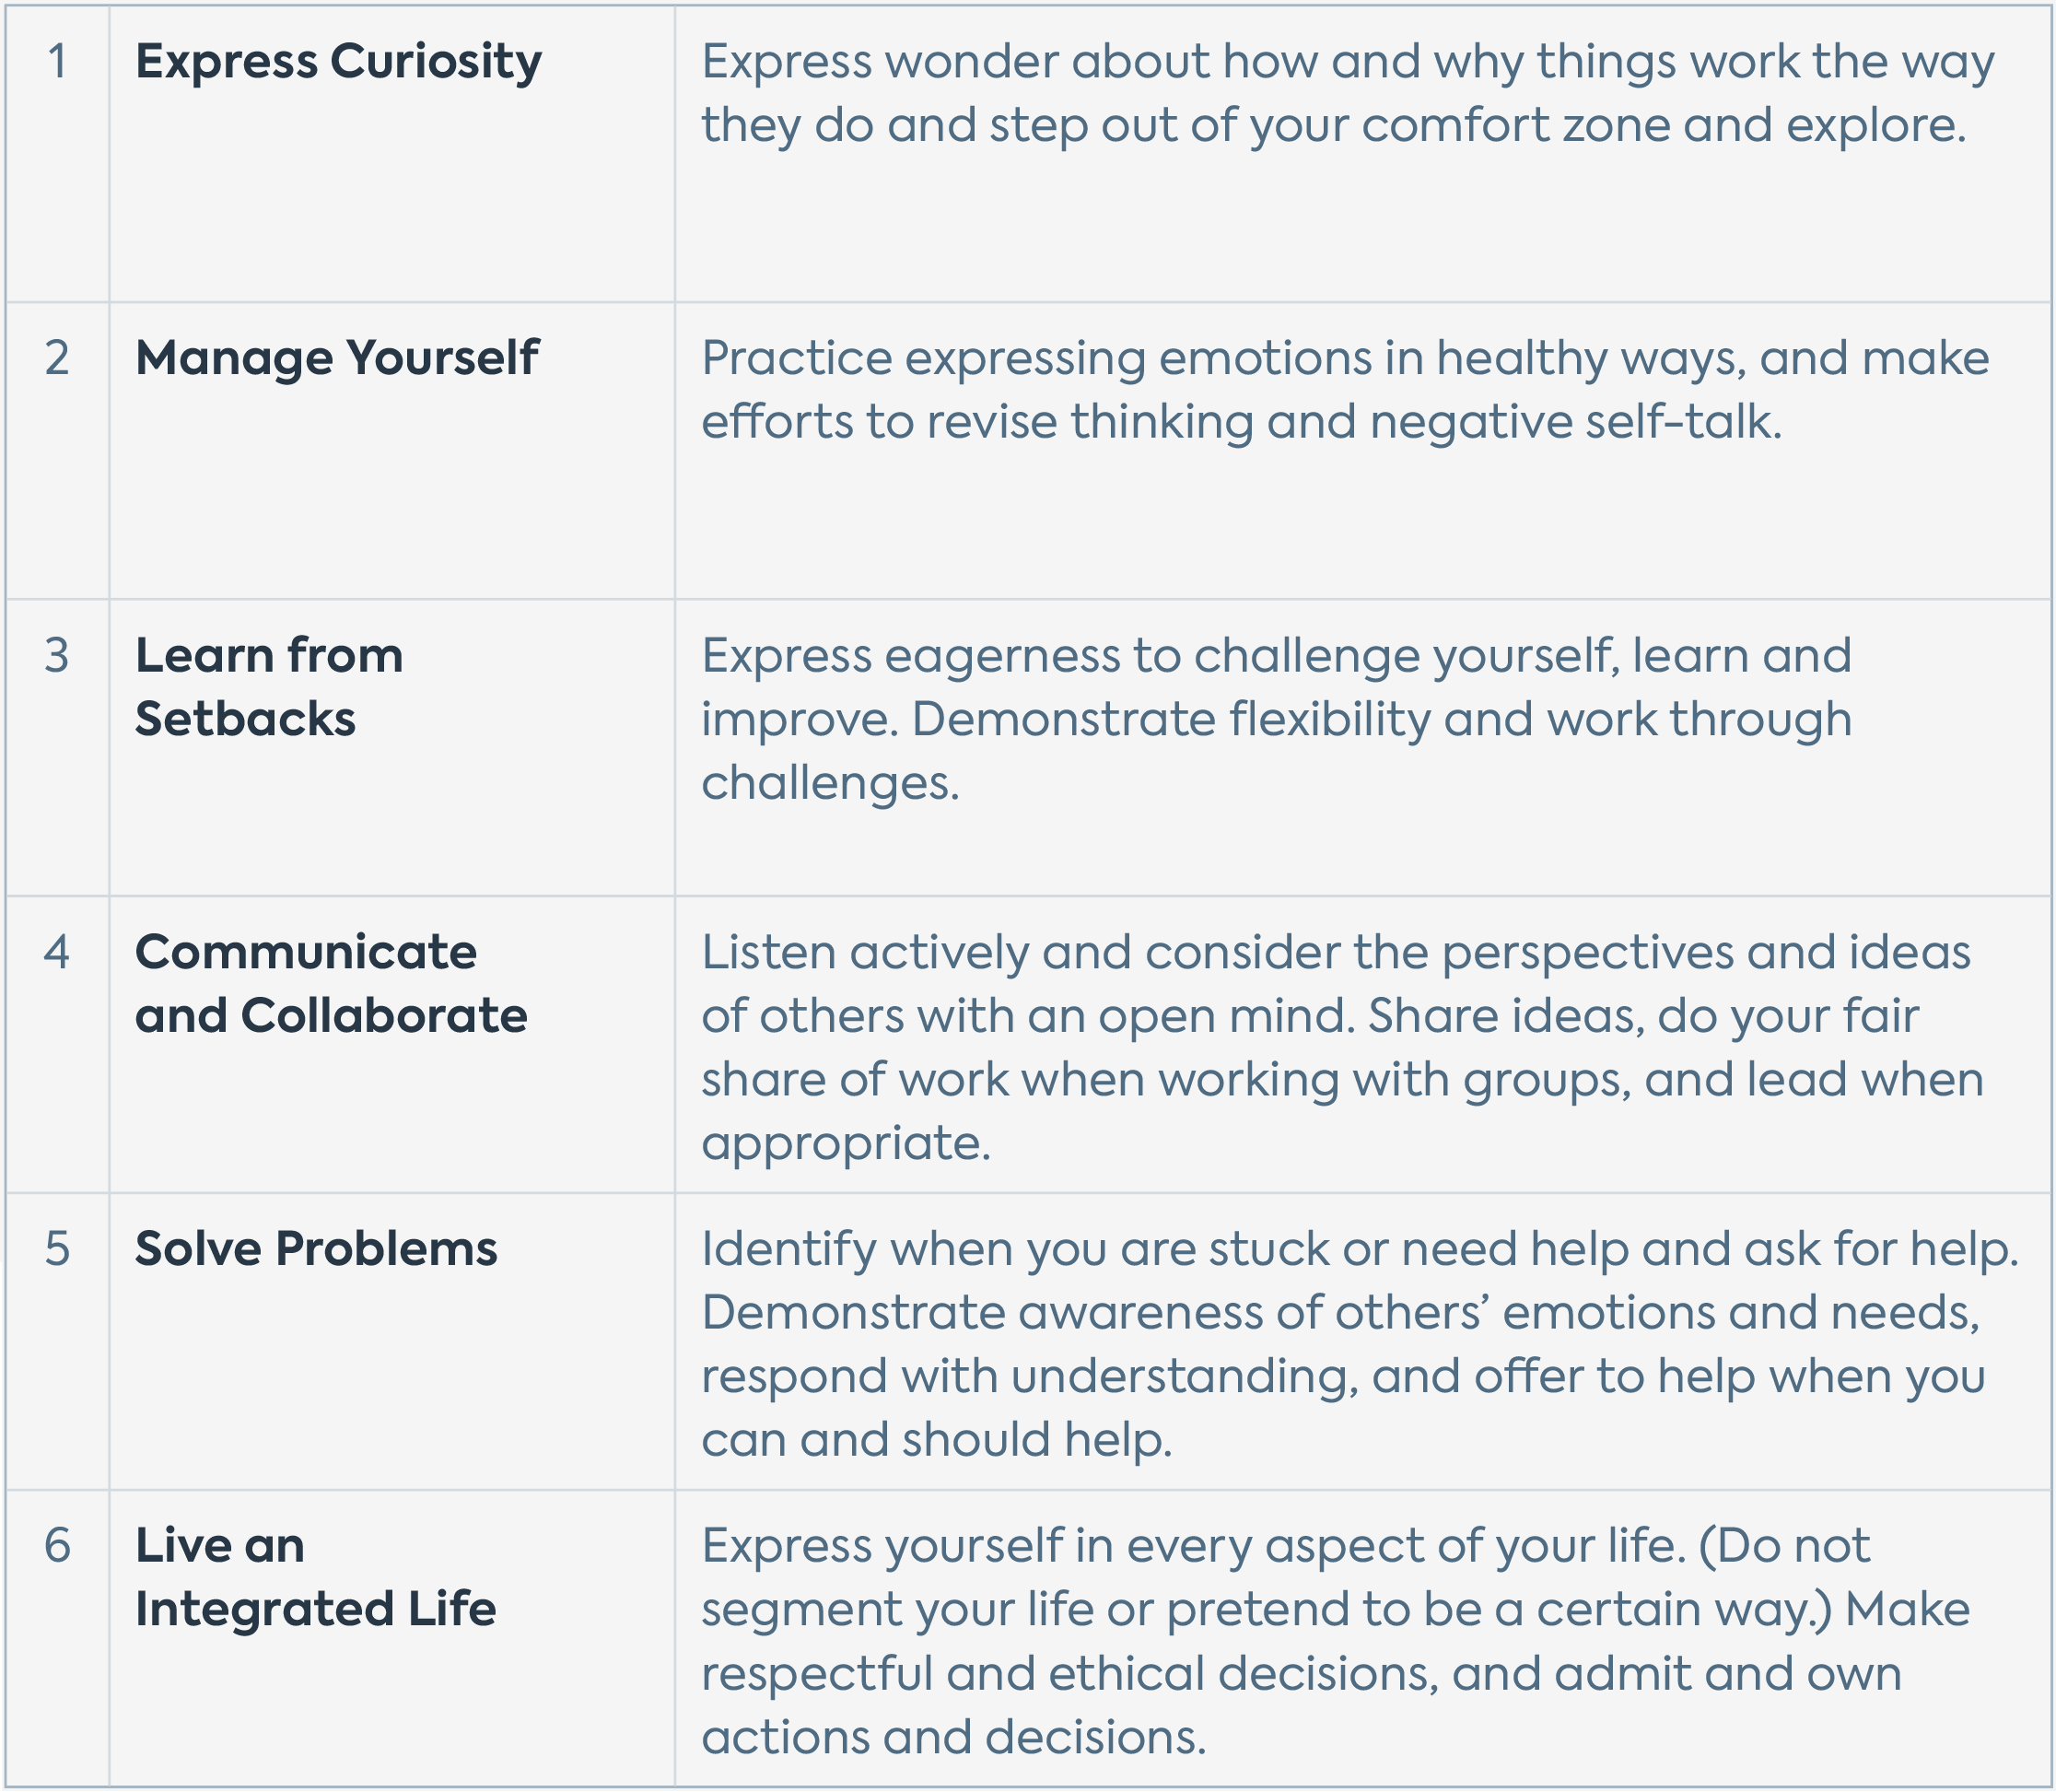 A table featuring the 6 Essential Habits of Quest Forward Learning — Express Curiosity, Manage Yourself, Learn from Setbacks, Communicate and Collaborate, Solve Problems, and Live an Integrated Life — with brief descriptions of each.